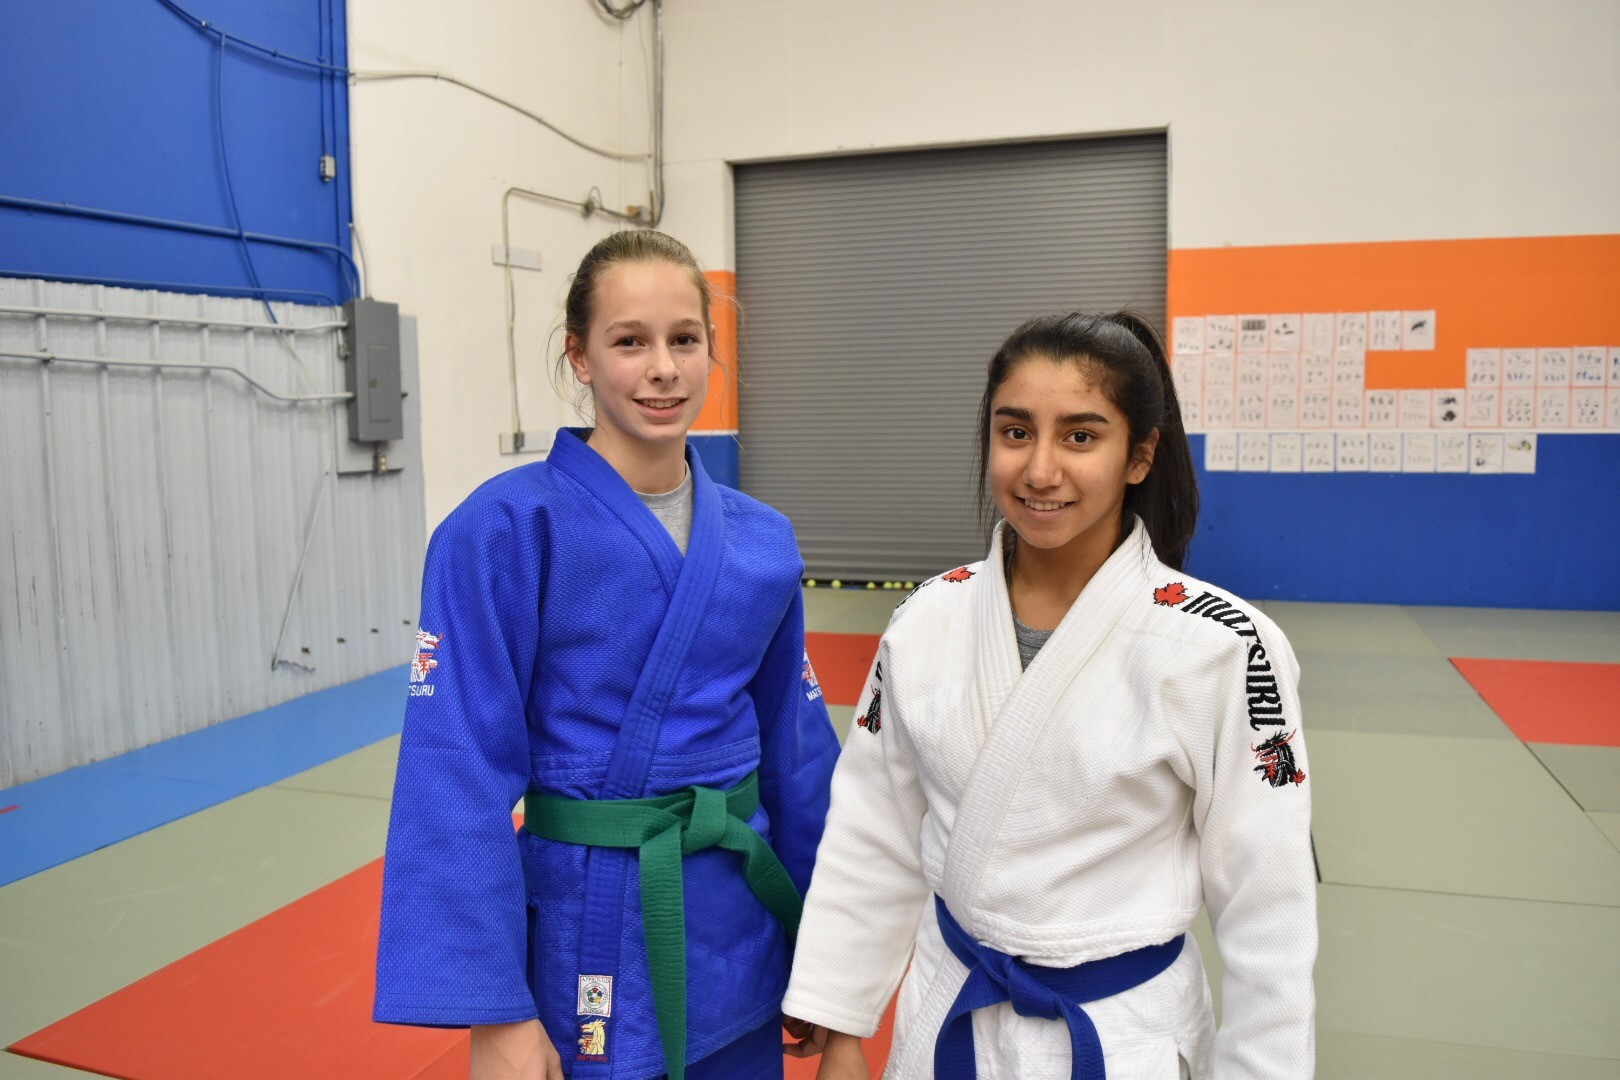 Local judo athletes part of Team Alberta at national events